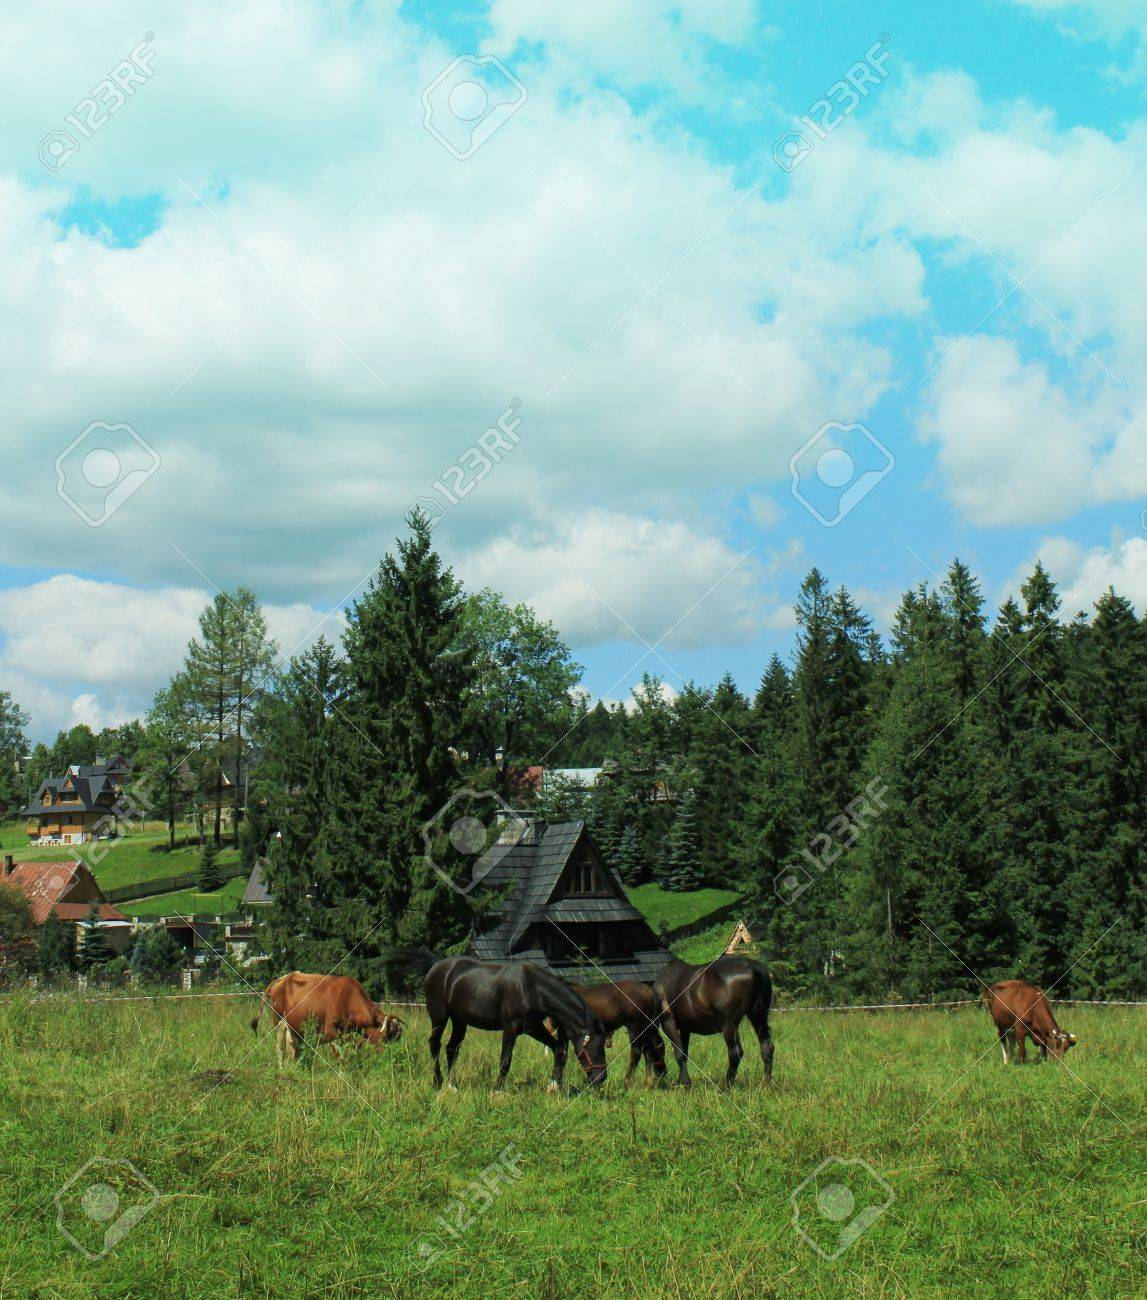 Herd of horses and cow grazing on an autumn meadow Stock Photo - 17224863